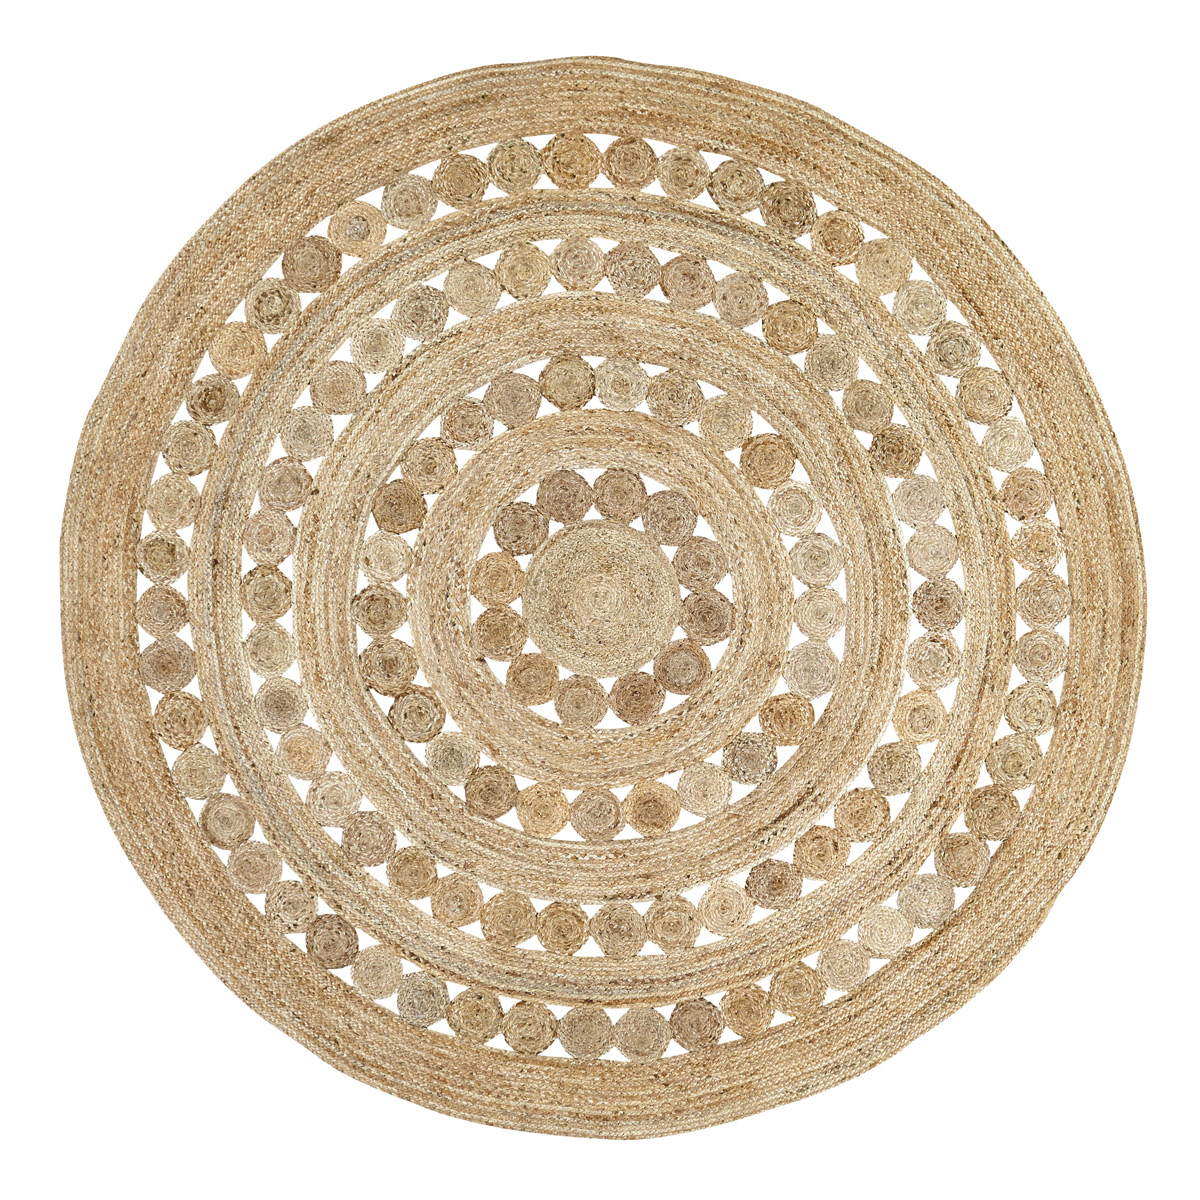 Celeste Round 8 Foot Jute Rug By Vhc Brands The Weed Patch